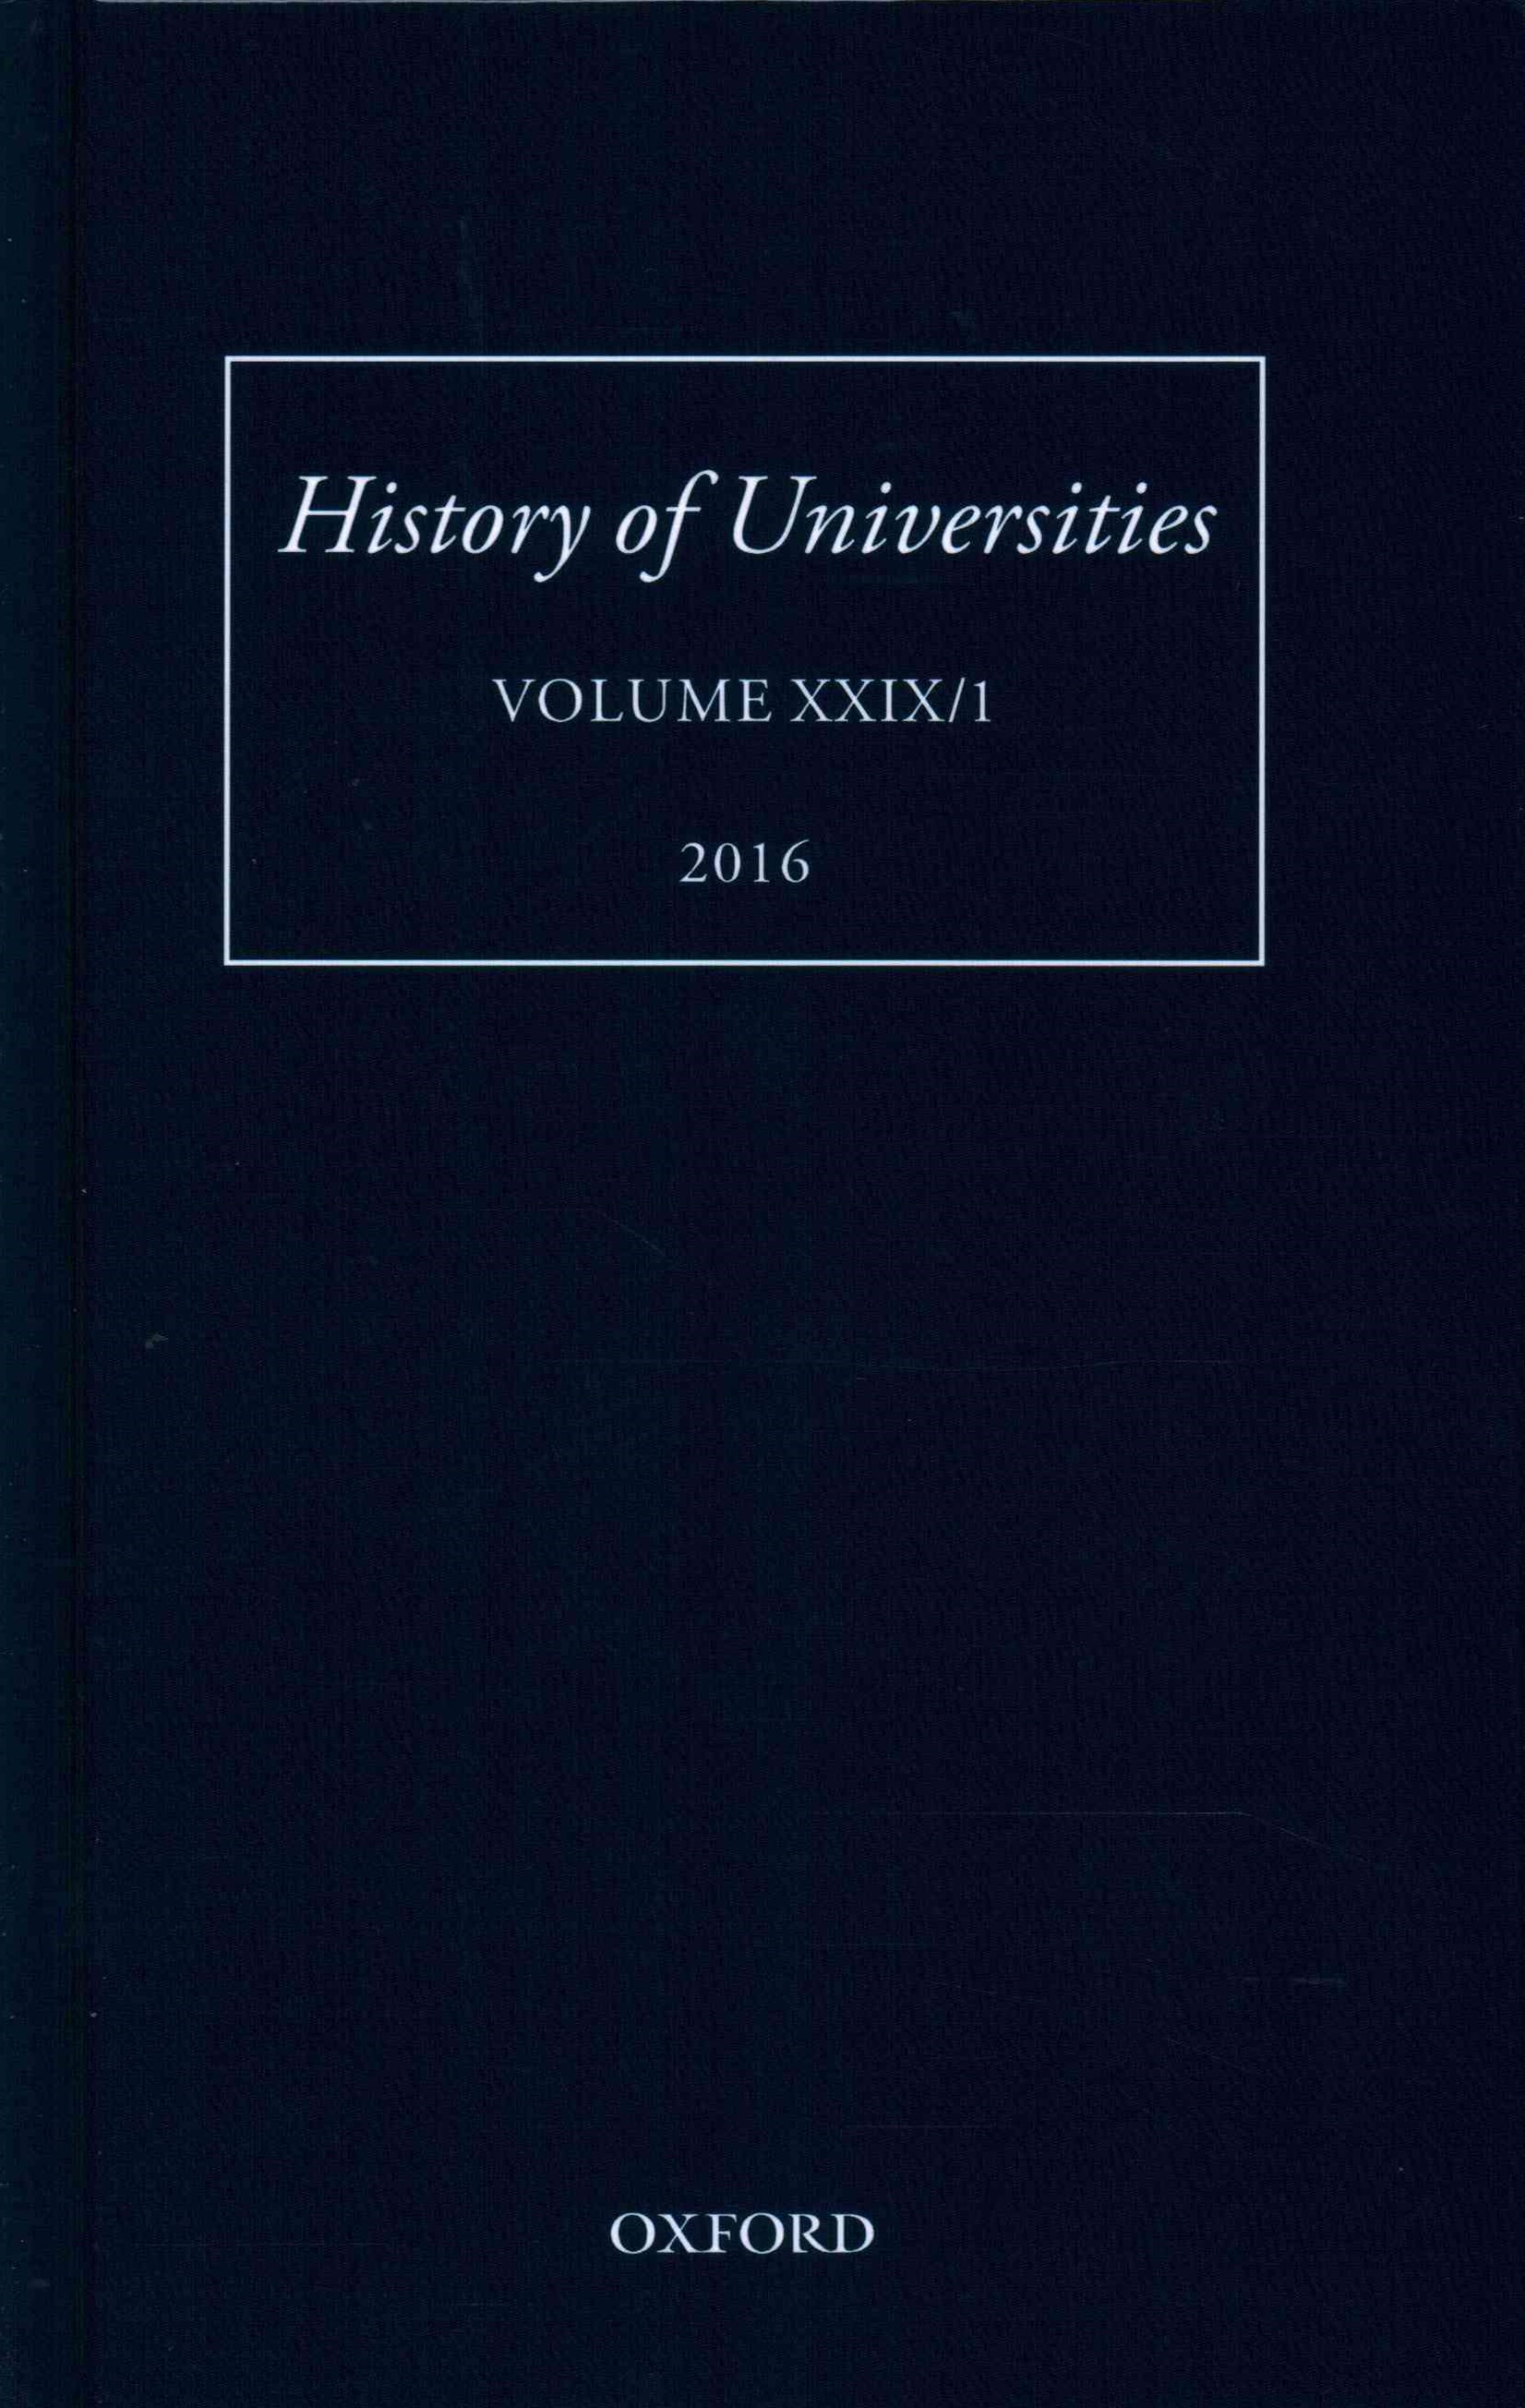 History of Universities, Volume XXIX / 1